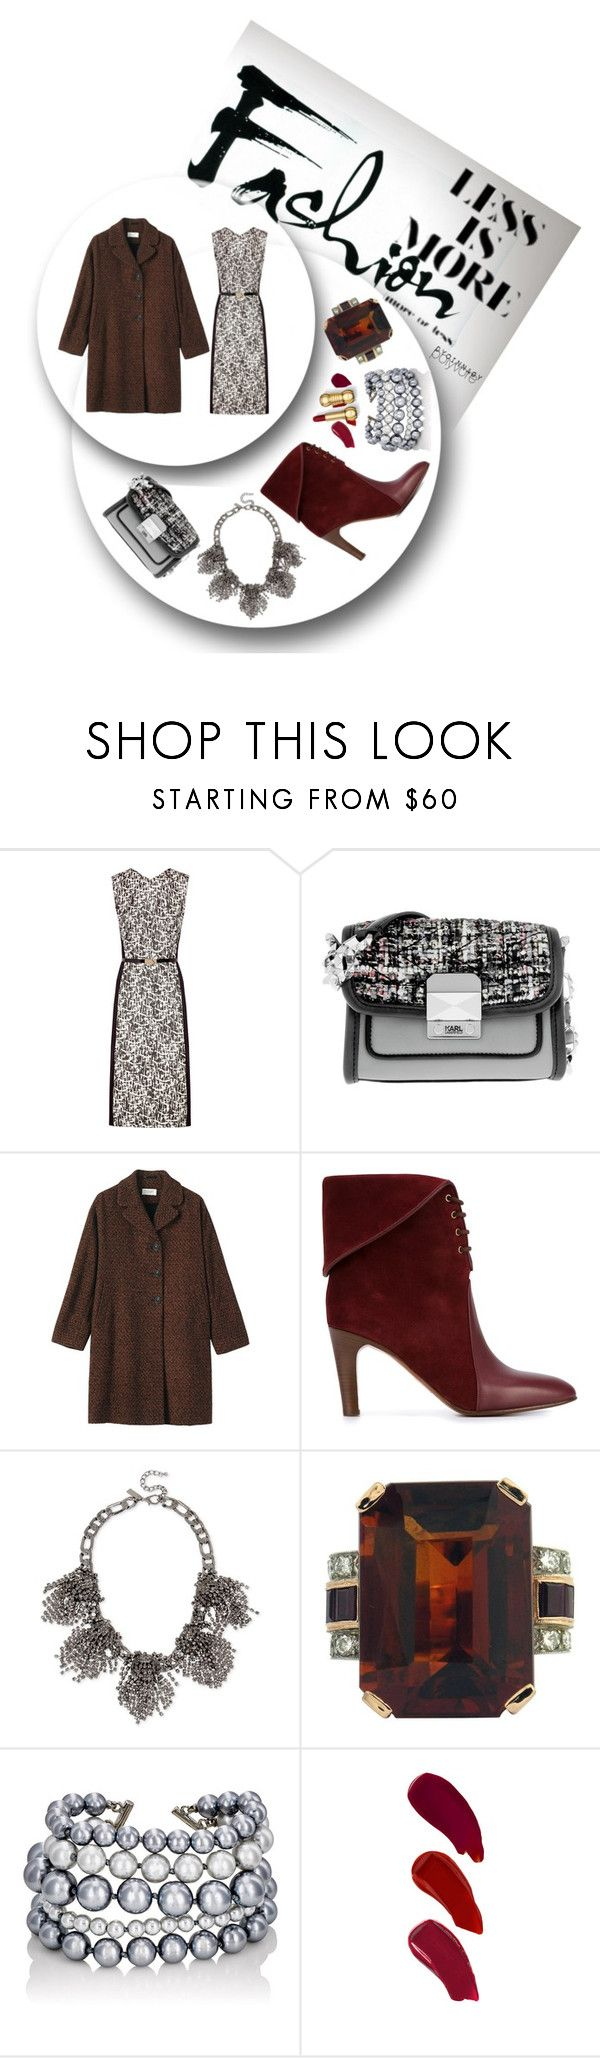 """""""Less Is More"""" by dycinnagy ❤ liked on Polyvore featuring Jason Wu, Karl Lagerfeld, Toast, Chloé, INC International Concepts, Kenneth Jay Lane, Ellis Faas, lessismore and tweed"""